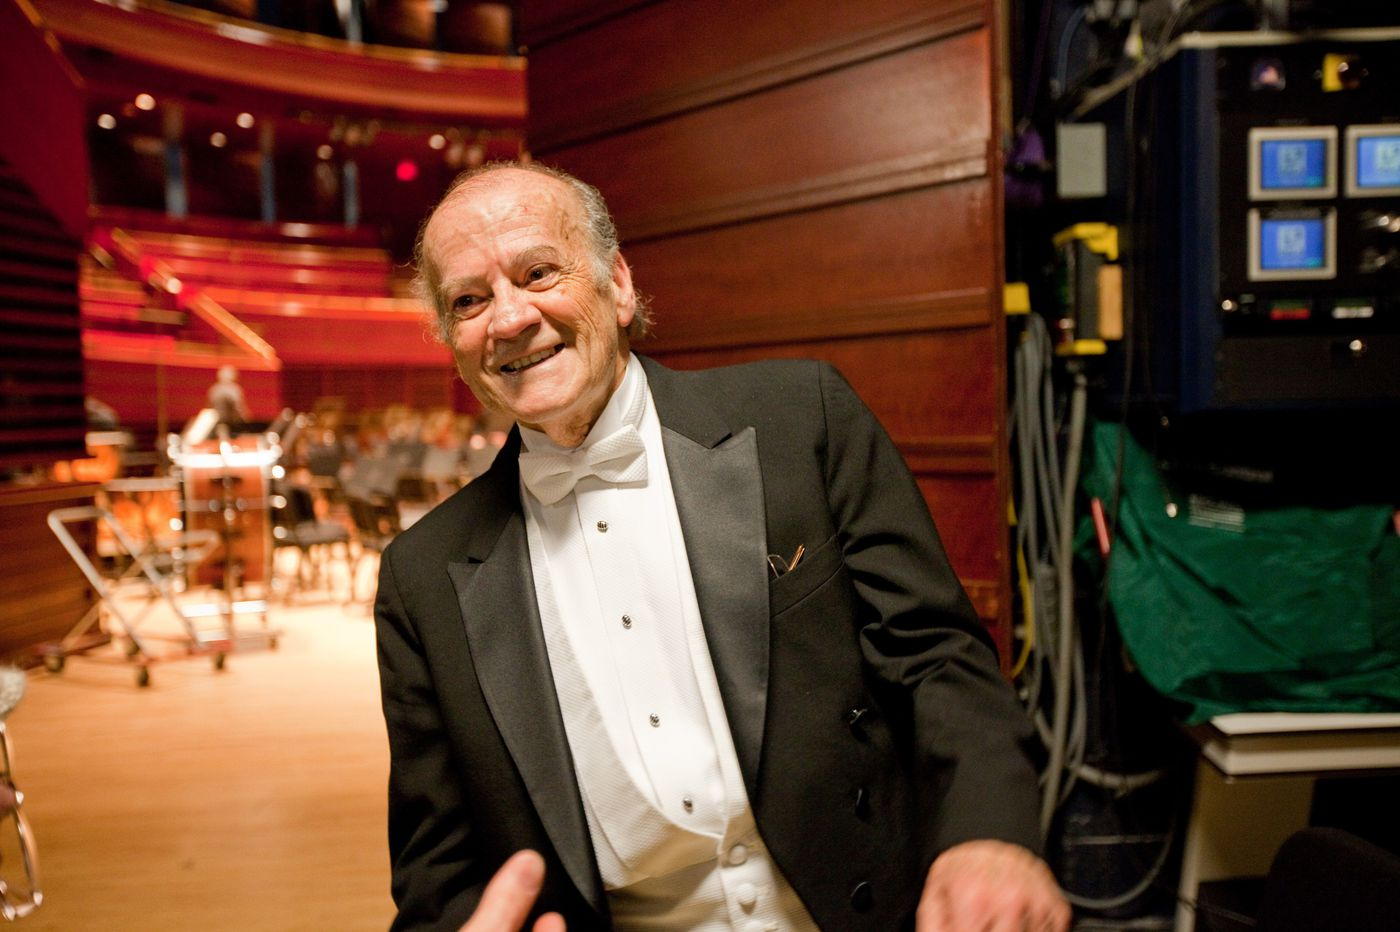 Conductor Luis Biava, 85, a Philadelphia Orchestra and Temple University mainstay